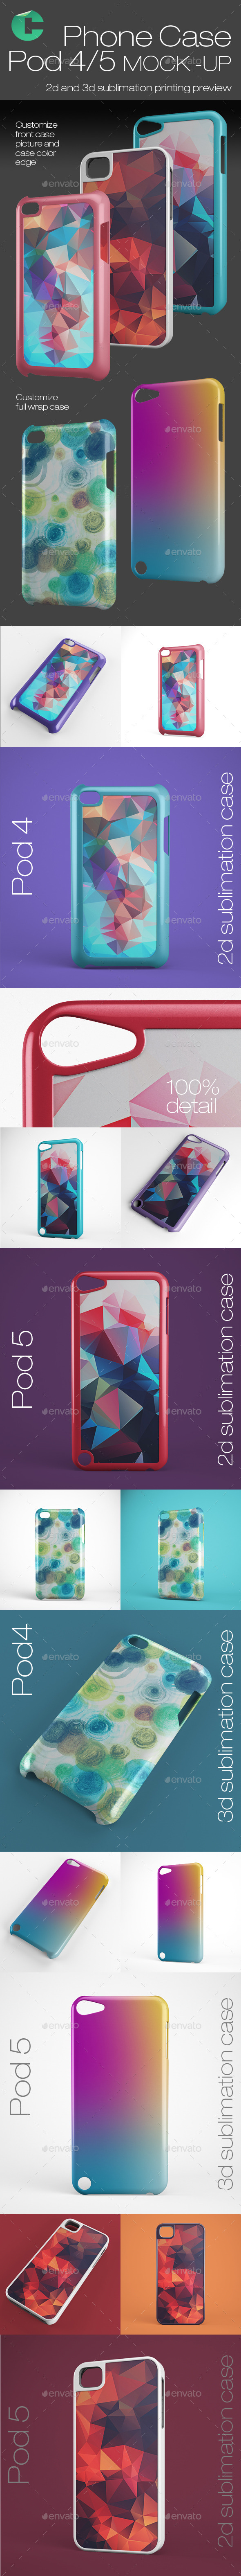 GraphicRiver Pod Case 4 5 Mock-ups 10336247